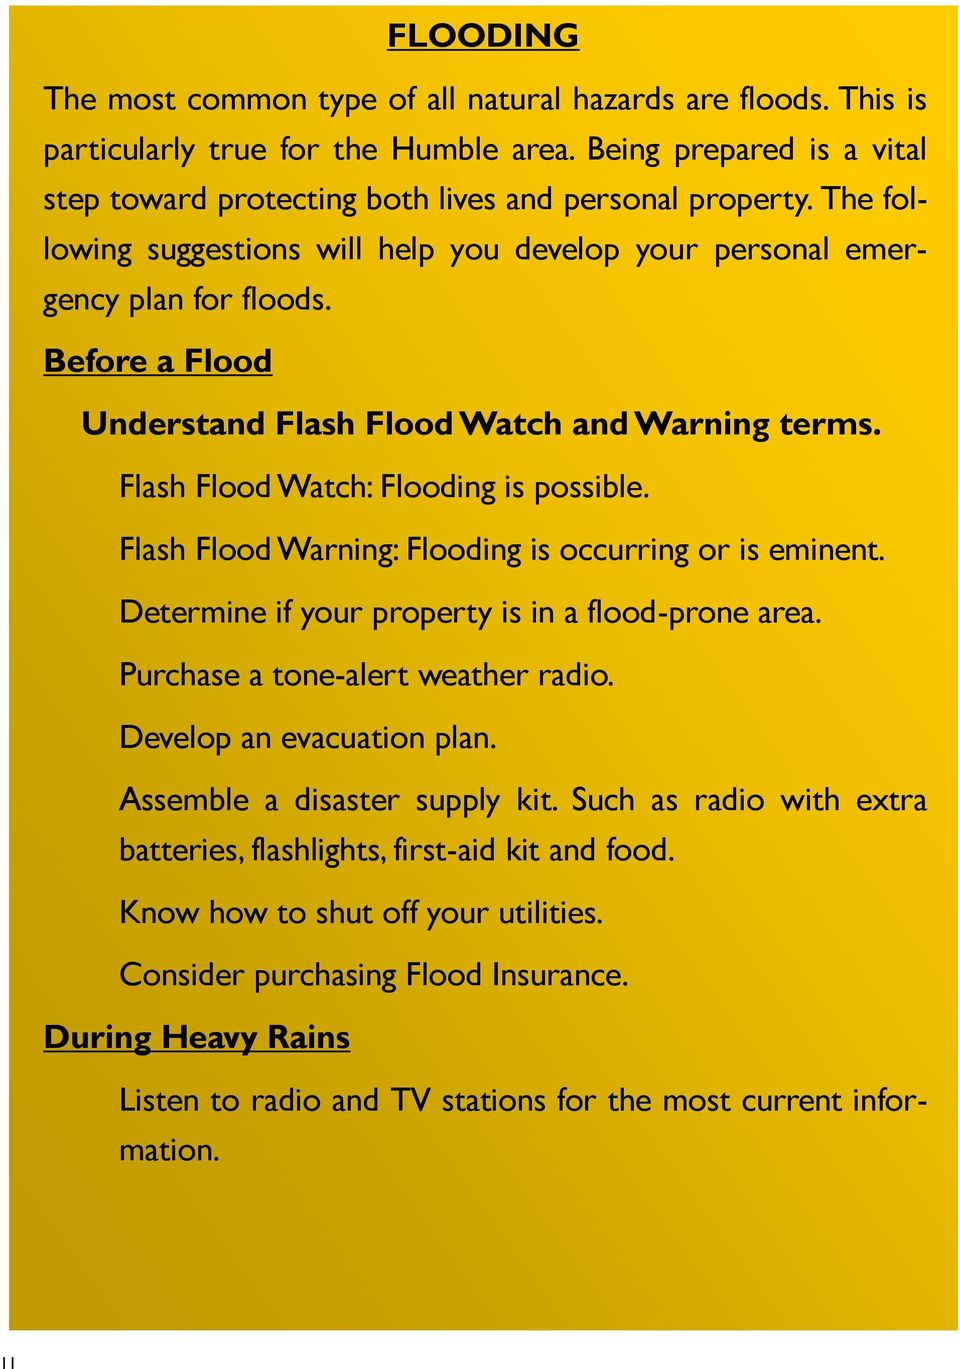 Flash Flood Warning: Flooding is occurring or is eminent. Determine if your property is in a flood-prone area. Purchase a tone-alert weather radio. Develop an evacuation plan.